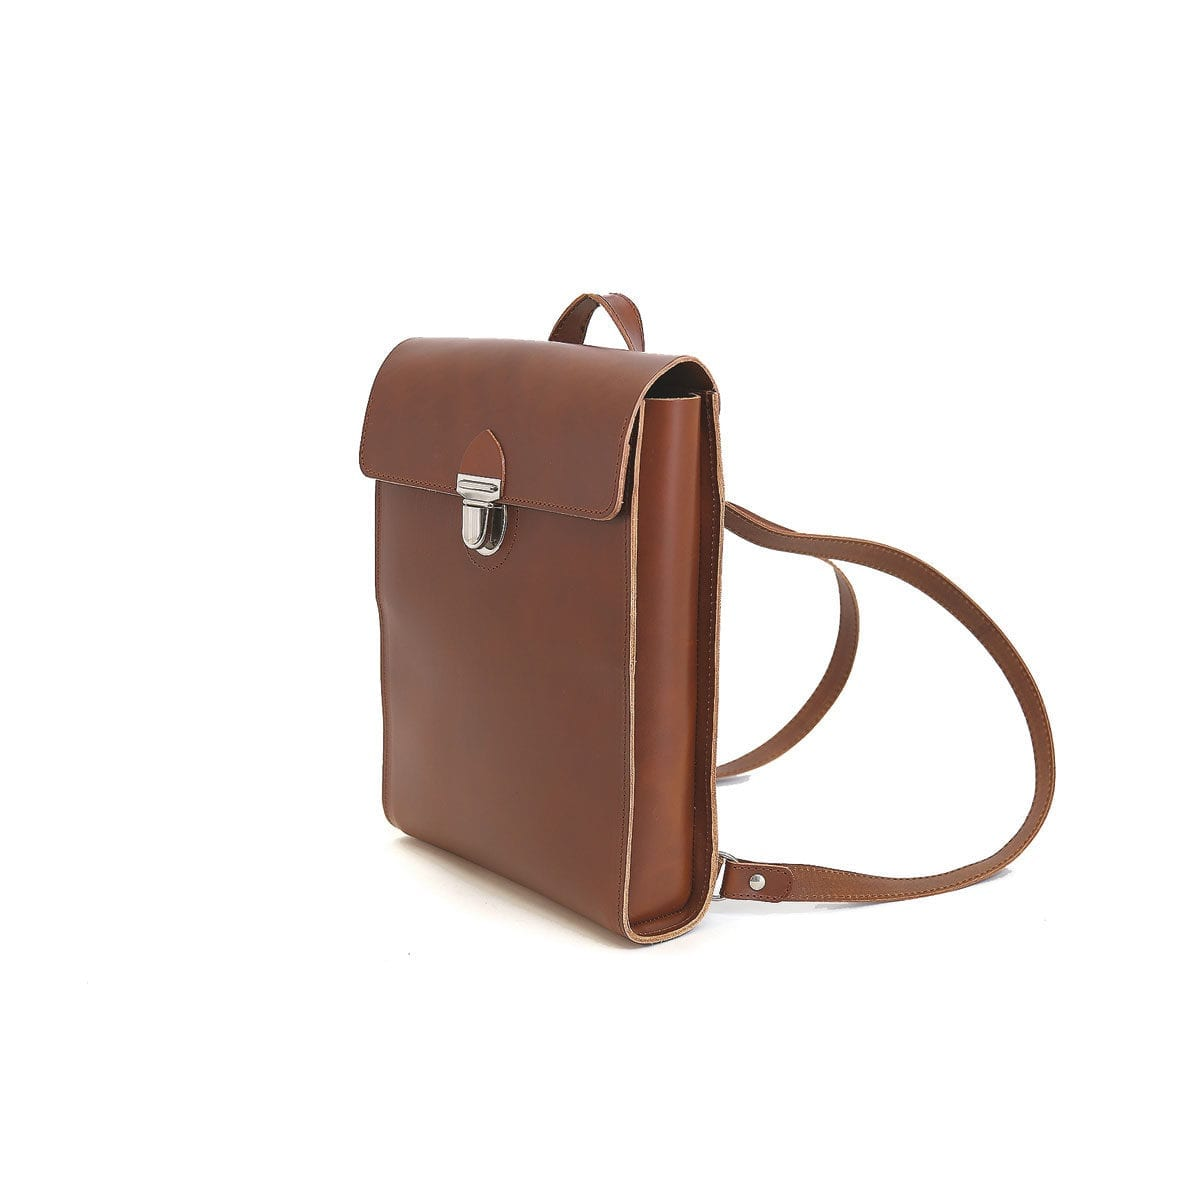 LUMI Oiva Backpack, in cognac, is created using natural vegetable tanned cow leather. The color will naturally change over time.